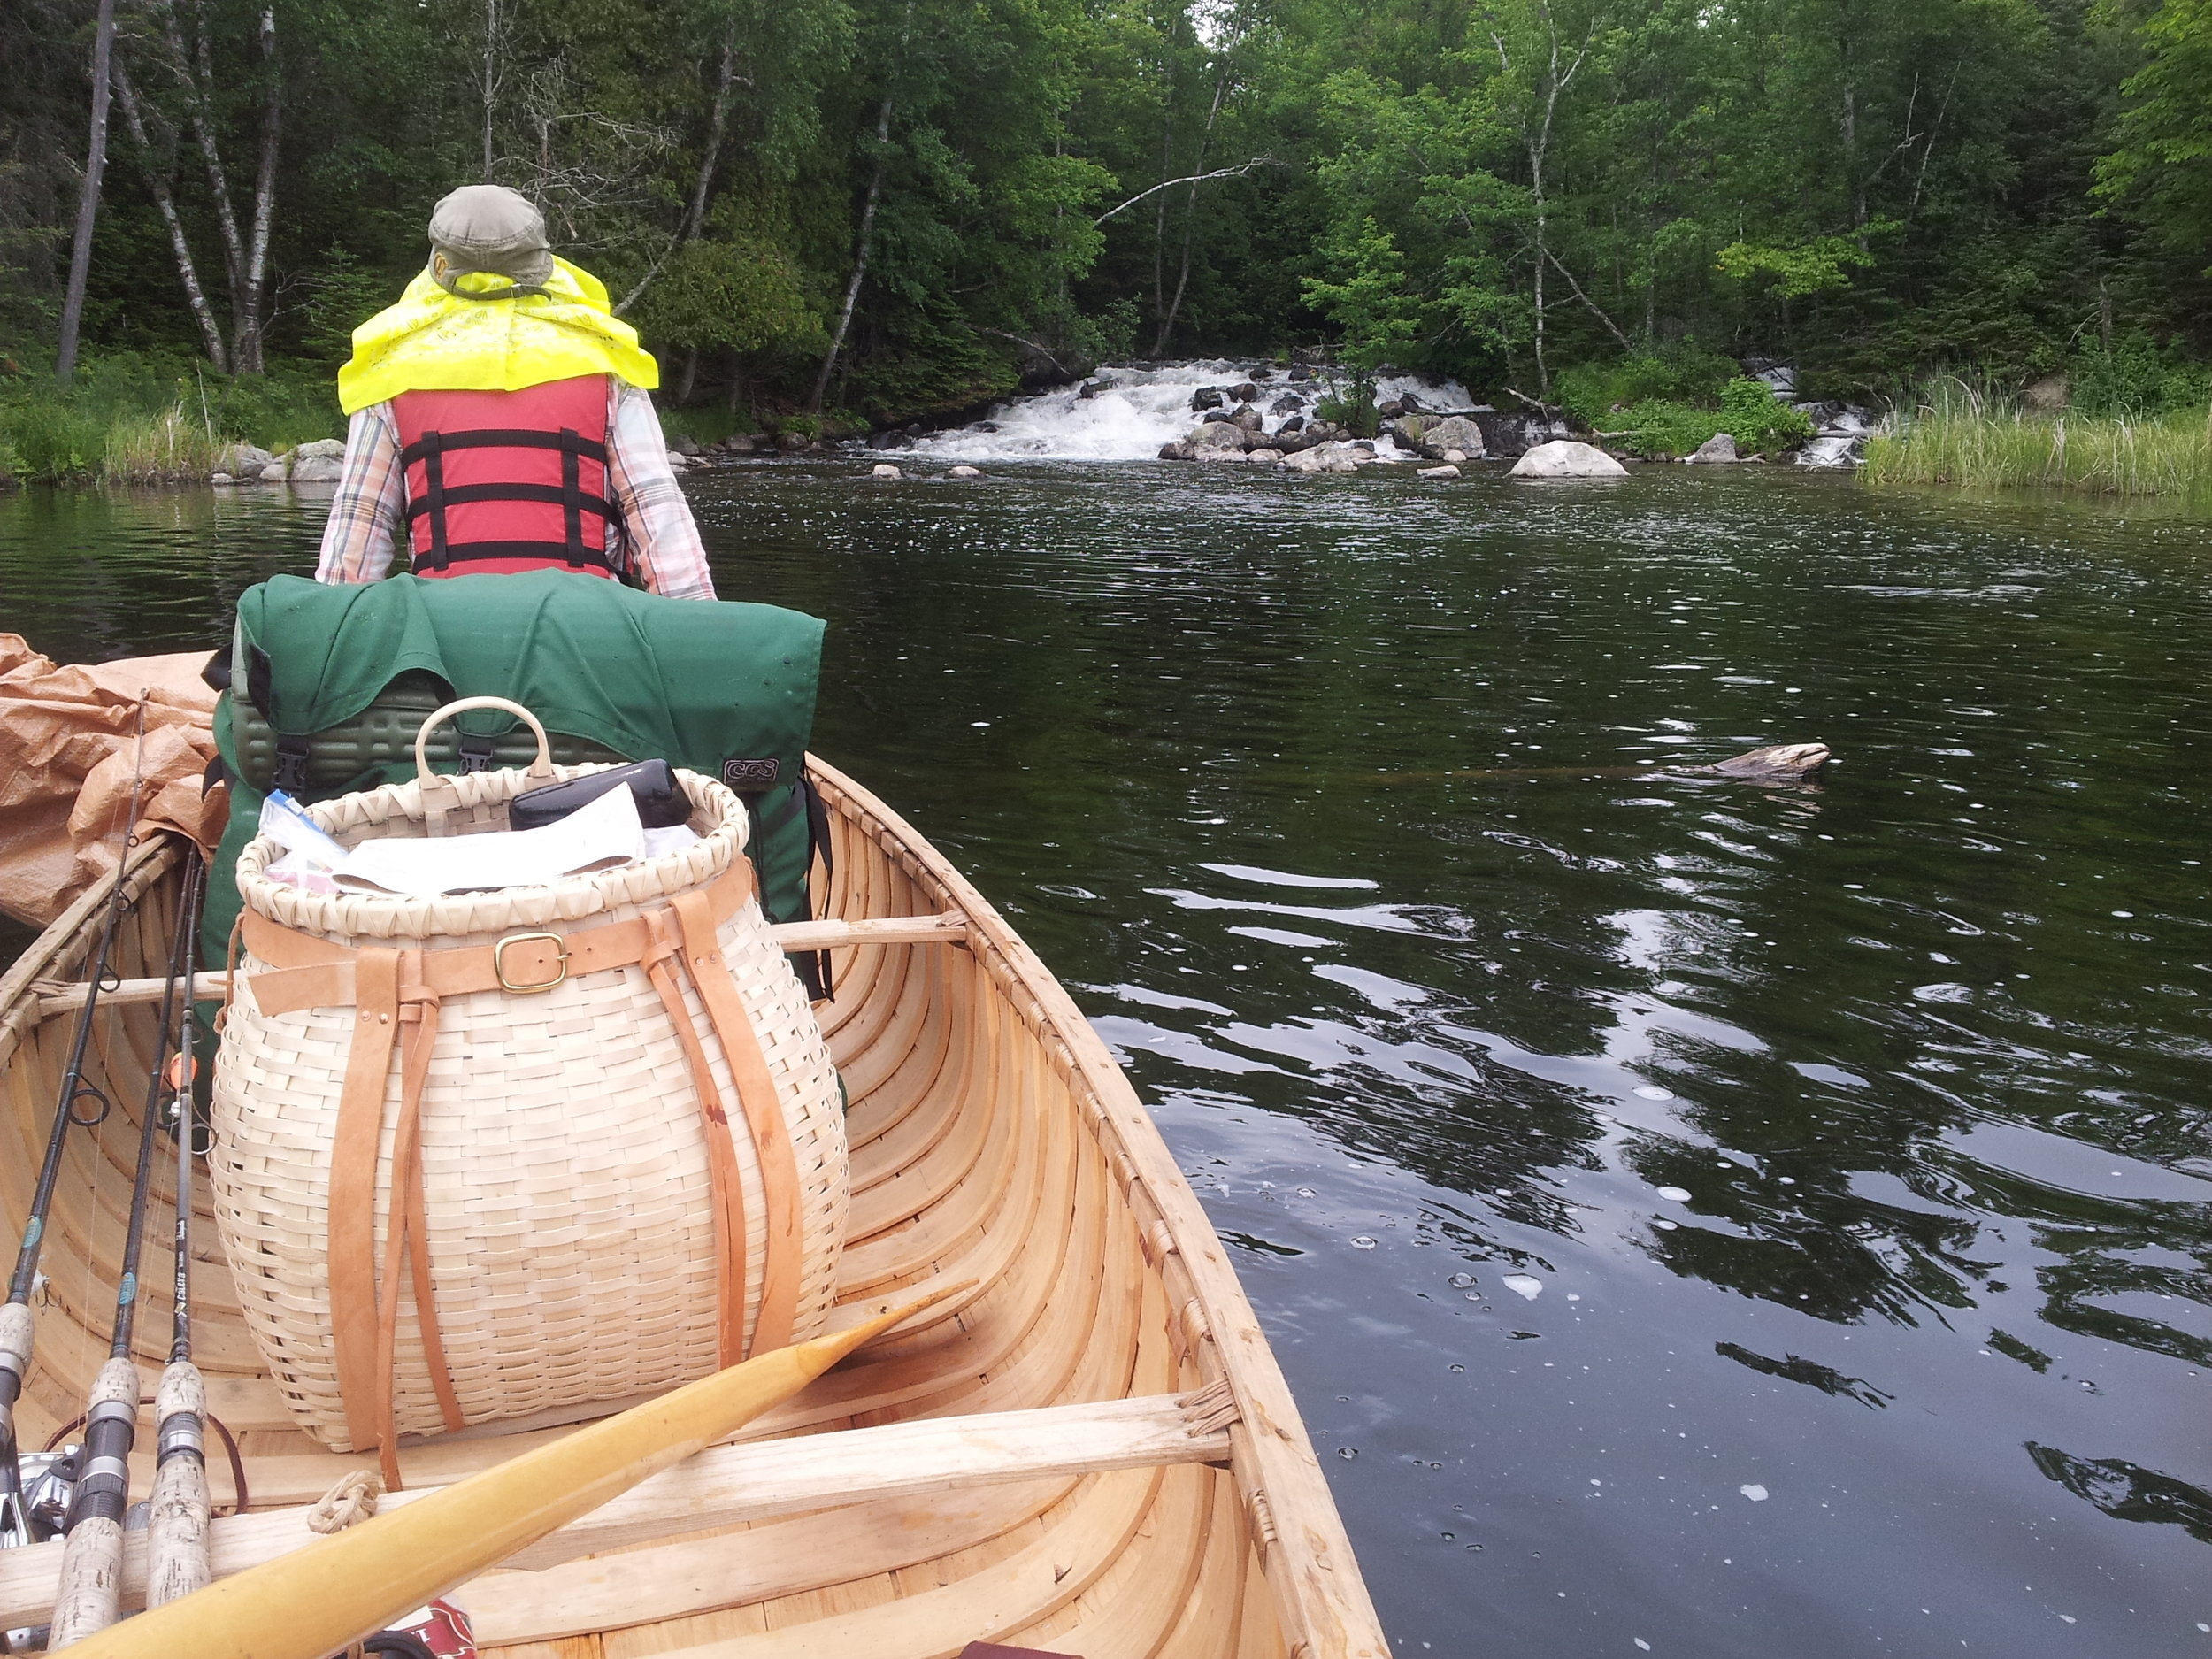 Learning the Traditional Ways of the Wilderness while traveling the BWCA in birch bark canoe is a one of a kind adventure & journey of discovery you don't want to miss!